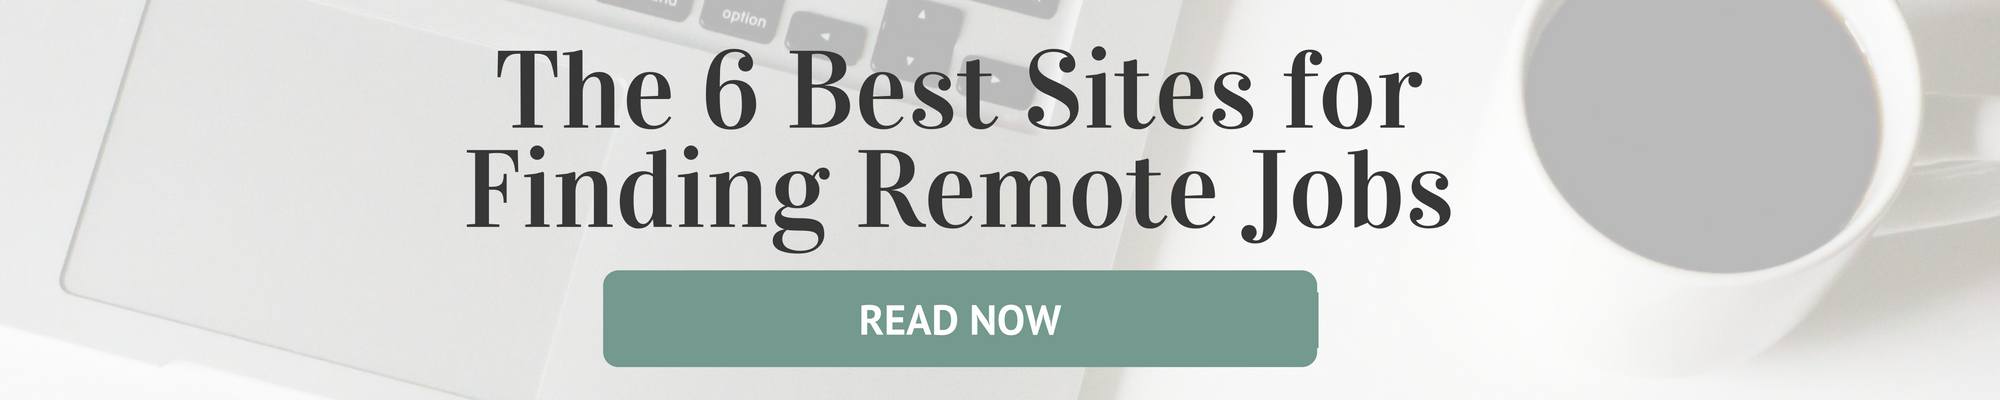 Top 6 sites for finding remote work (1).png